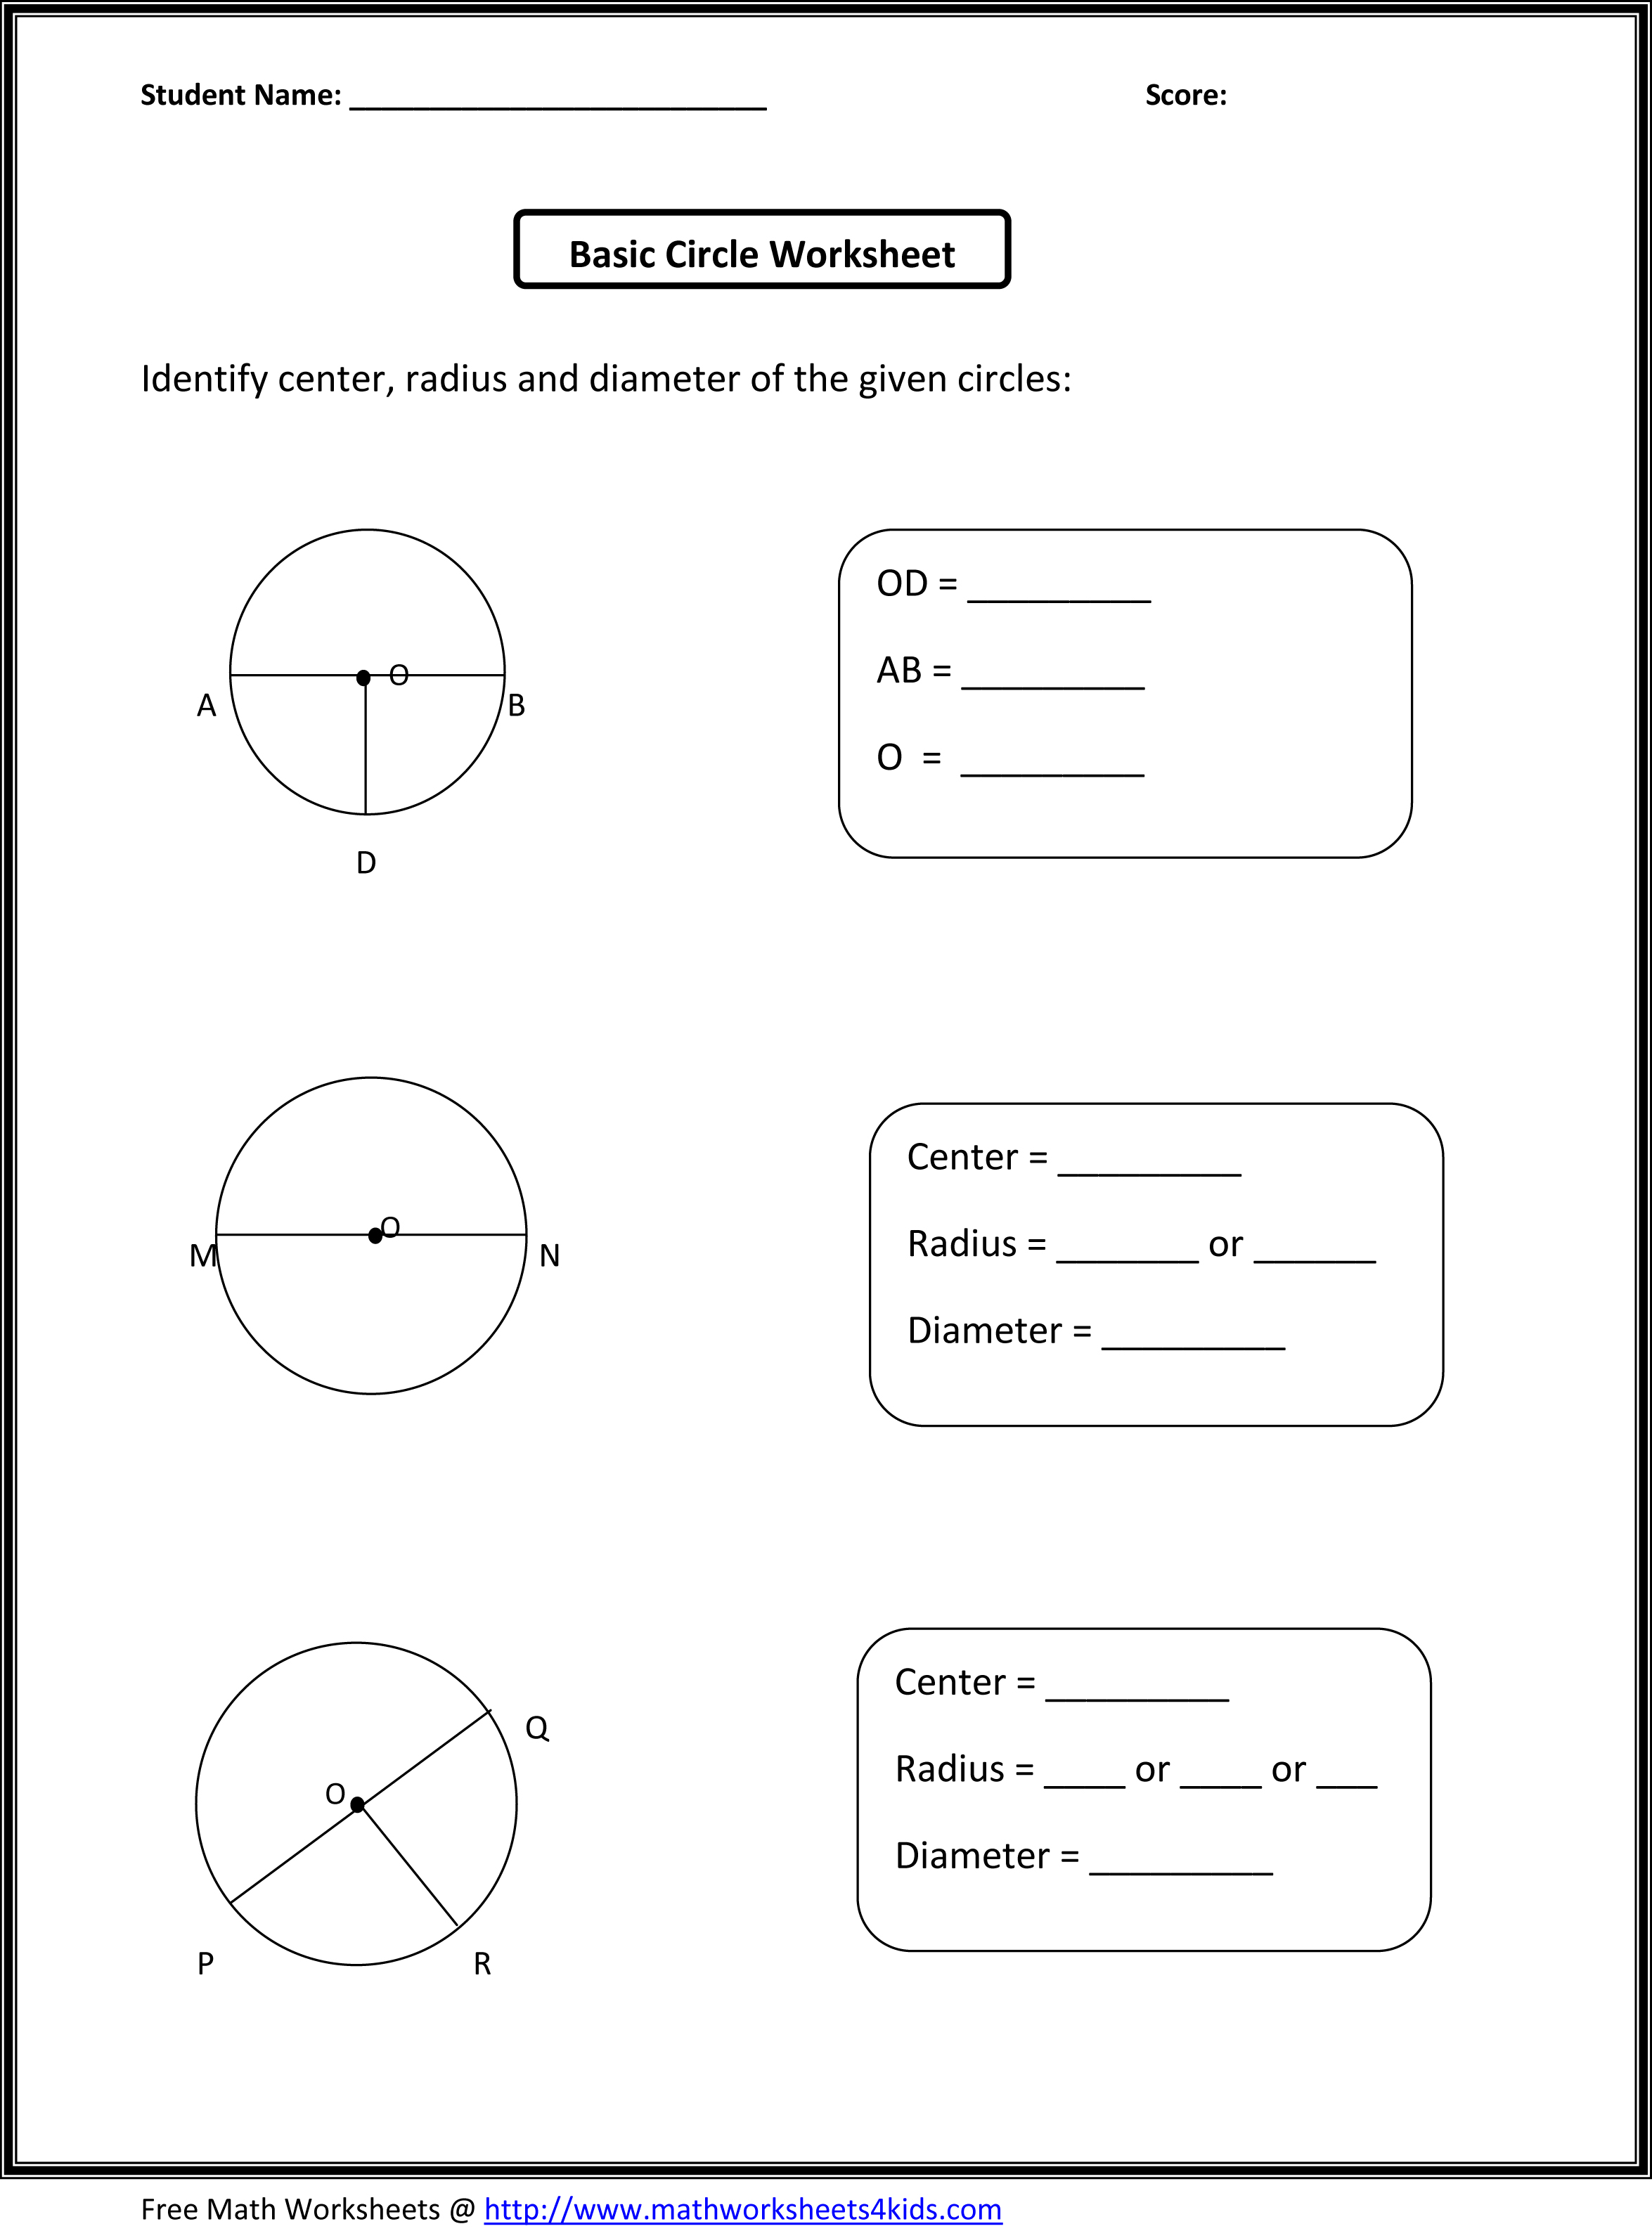 Math Problems For 3Rd Graders Worksheets – Math Practice Worksheets 3rd Grade